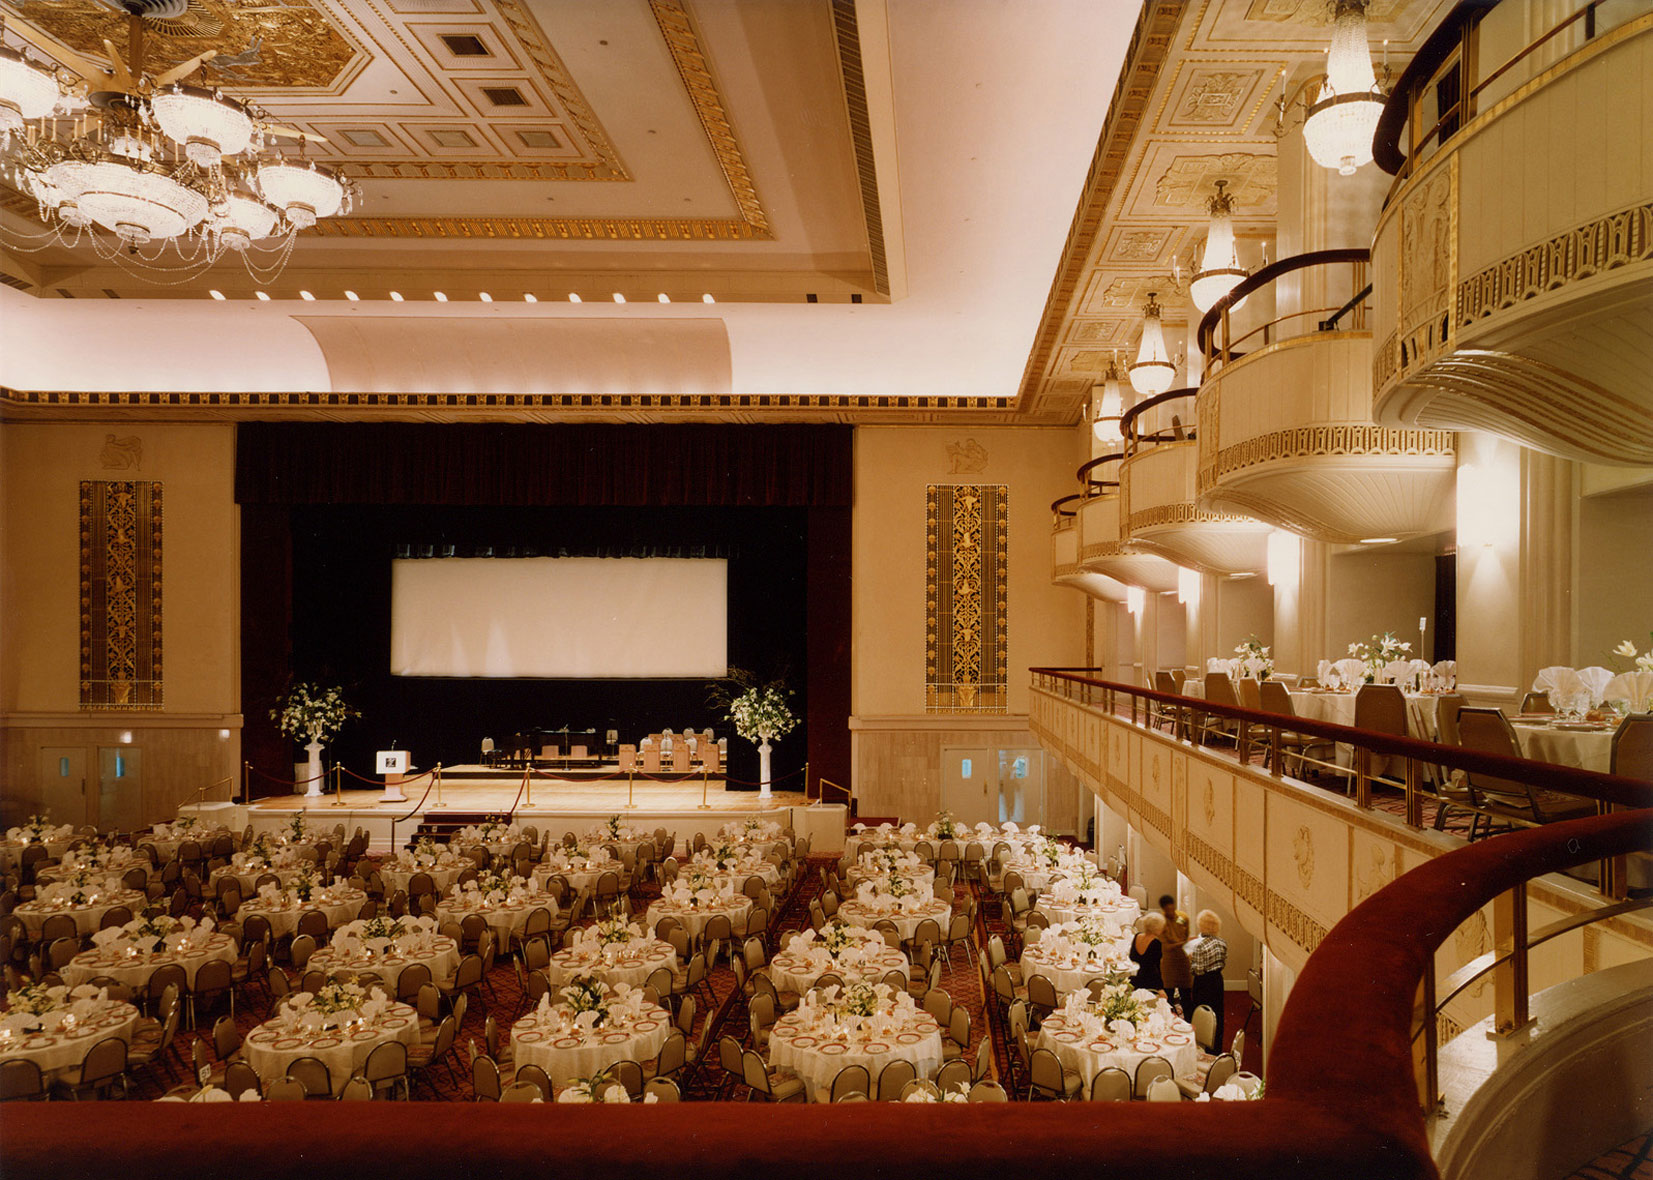 Grand Ballroom, Waldorf=Astoria, Park Avenue, New York, Interior Design by Kenneth E. Hurd & Associates